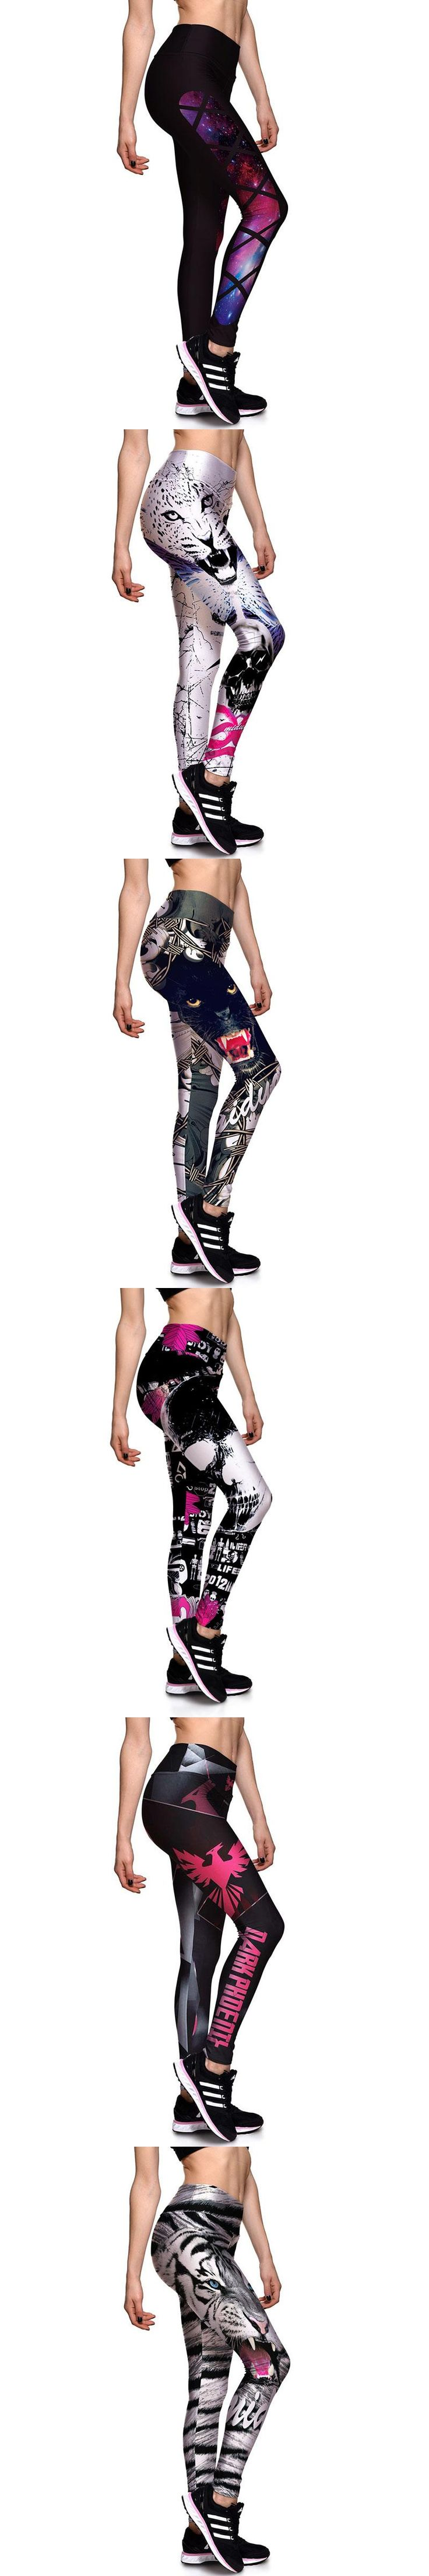 Europe America Styles 3D Printing Women Leggings Plus Size Fitness Sexy New Stretch Dancing Workout Legging ropa deportiva mujer